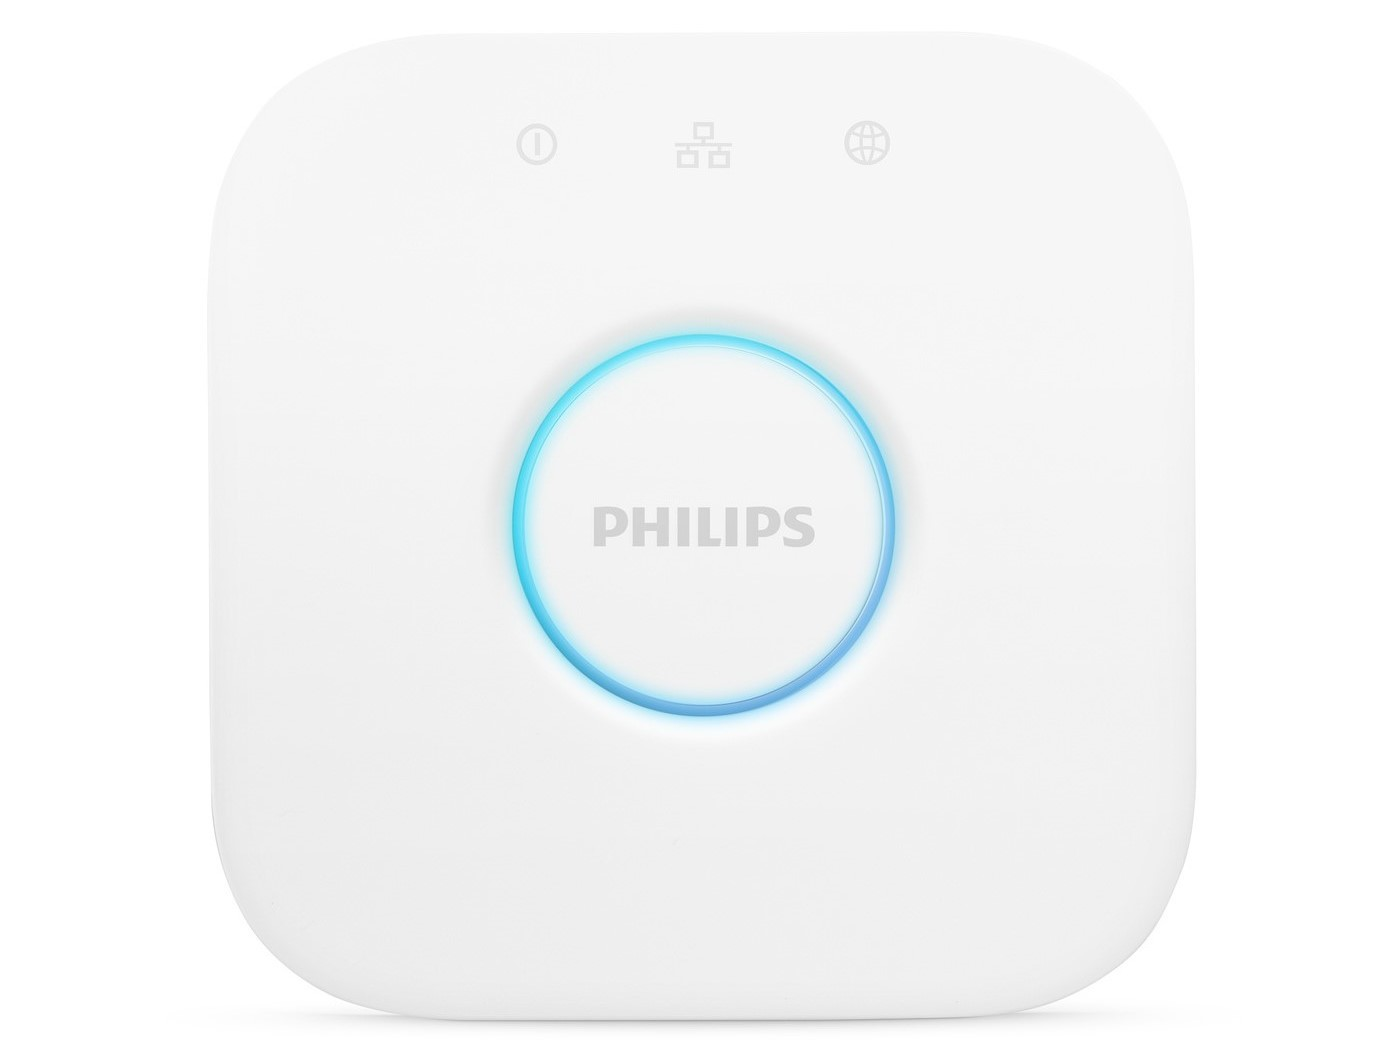 Philips HUE HomeKit 升级桥接器